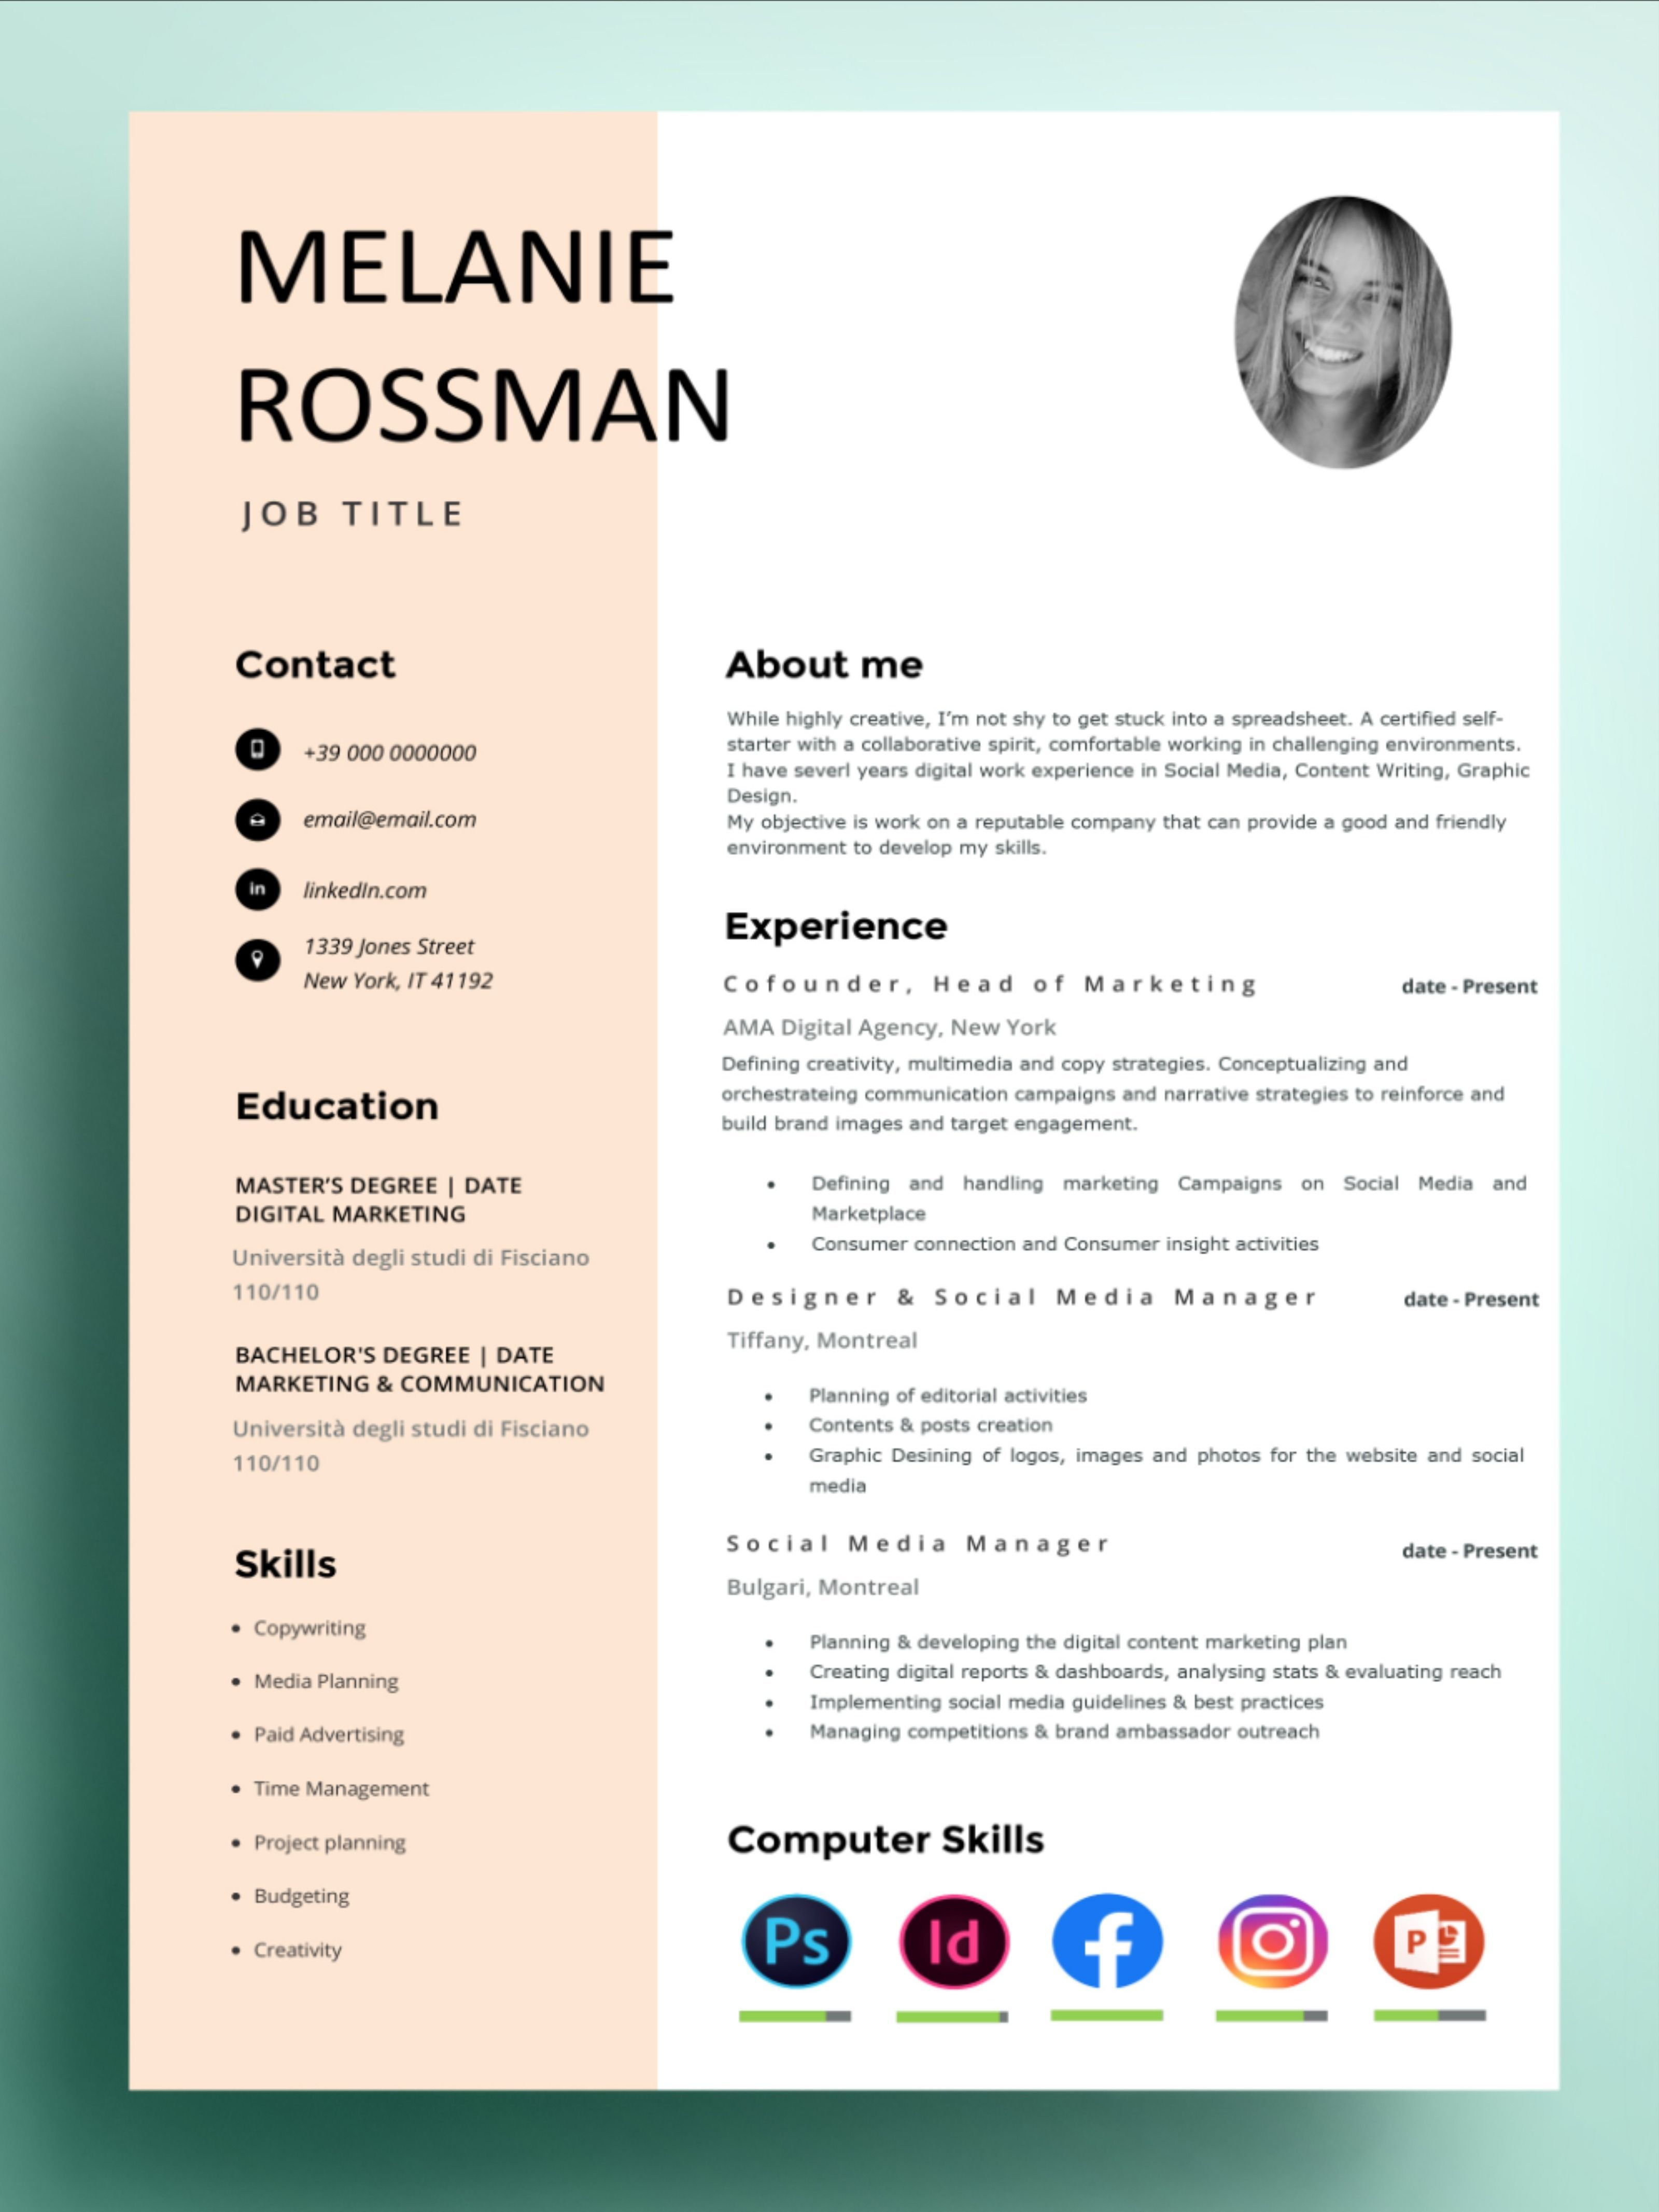 Resume template new york cv template hire me store